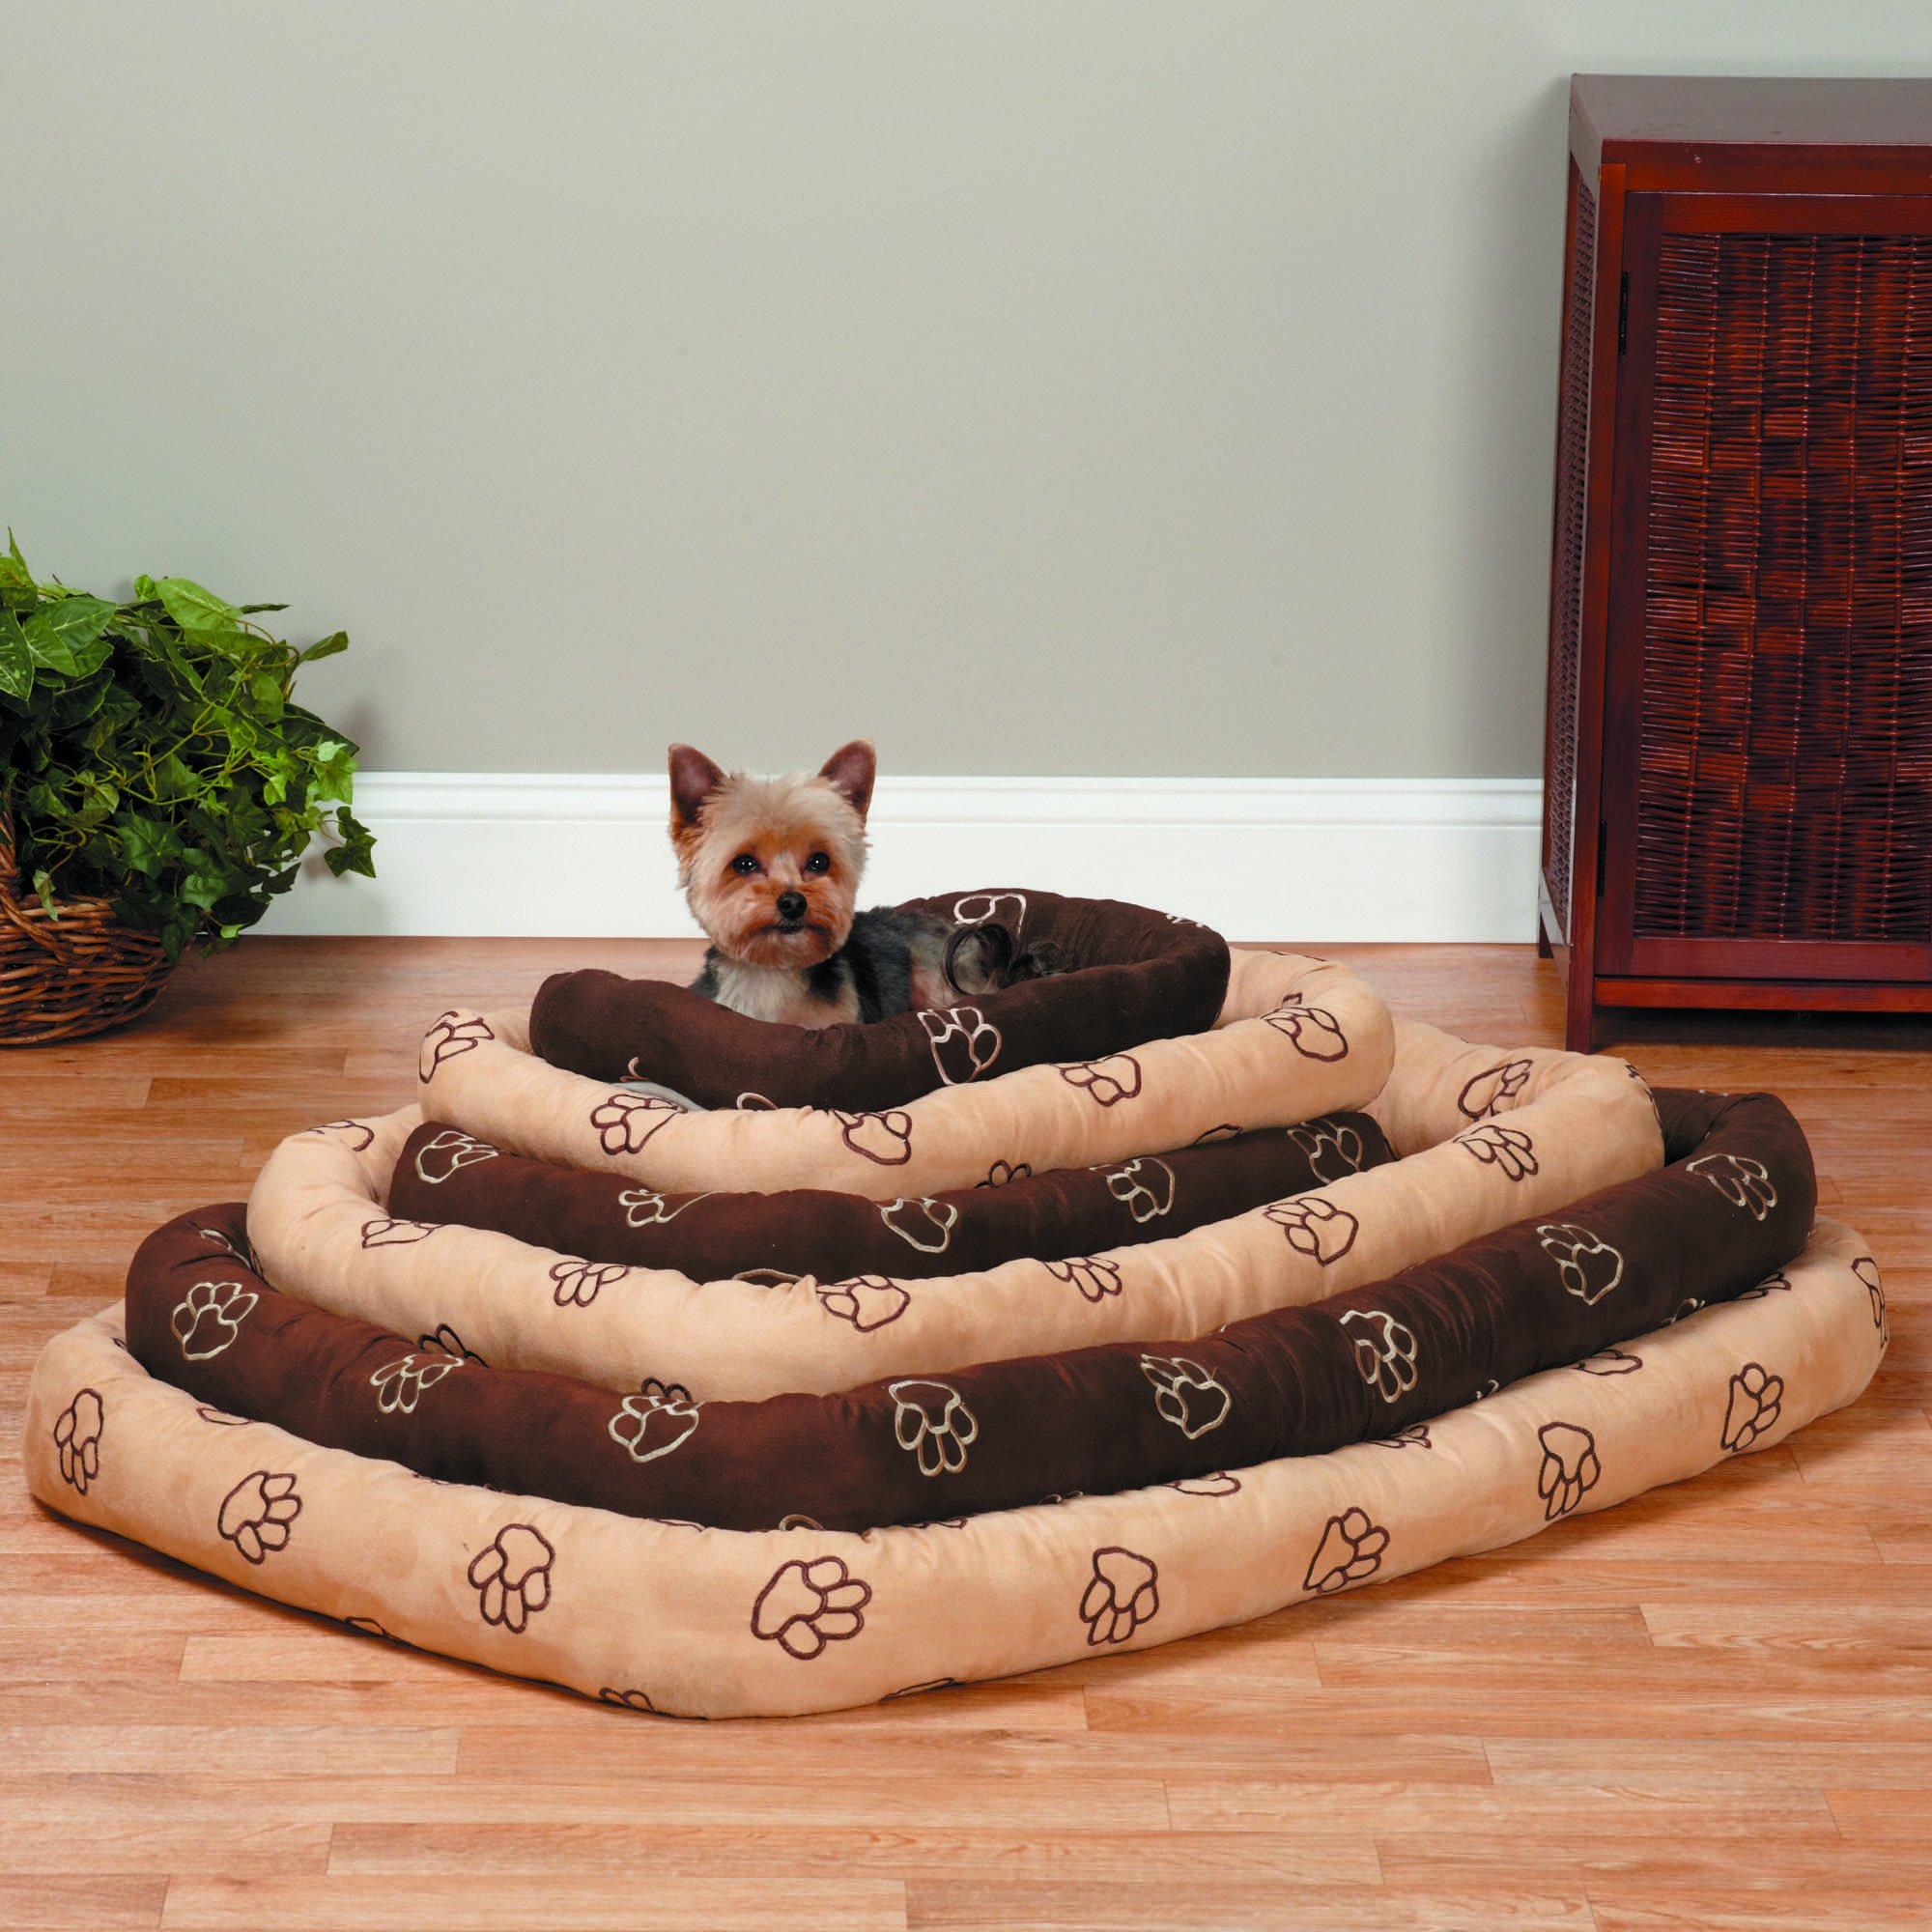 Slumber Pet Embroidered Pawprint Crate Beds - Soft and Extra-Durable Beds for Dogs and Cats - X-Large, 473/4'' L x 293/4'' W, Chocolate